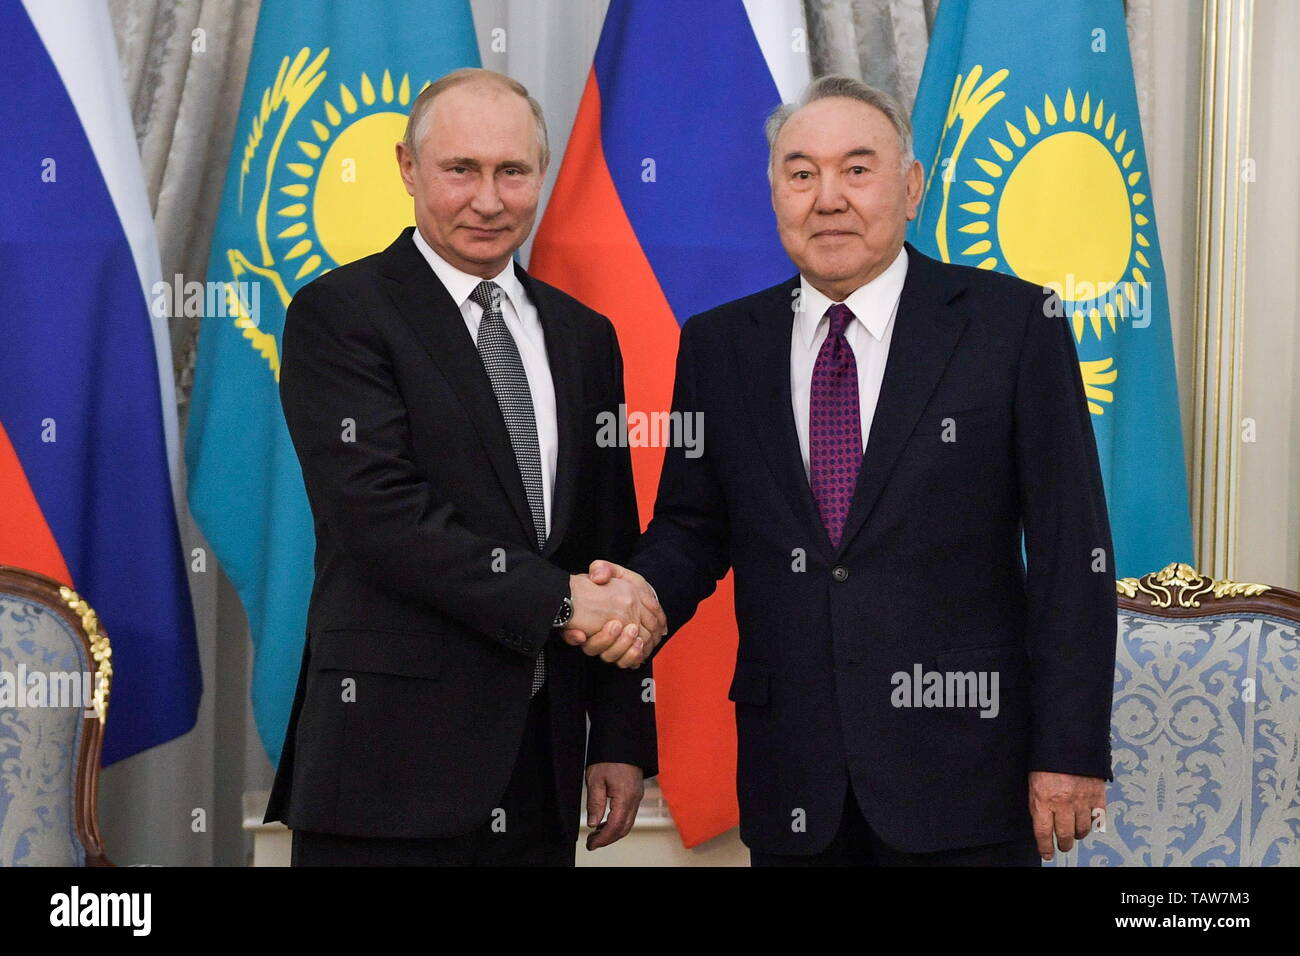 Nur Sultan, Kazakhstan. 28th May, 2019. NUR-SULTAN, KAZAKHSTAN - MAY 28, 2019: Russia's President Vladimir Putin (L) meets with Kazakhstan's Former President Nursultan Nazarbayev at the Akorda, the residence of the President of Kazakhstan. Alexei Nikolsky/Russian Presidential Press and Information Office/TASS Credit: ITAR-TASS News Agency/Alamy Live News - Stock Image